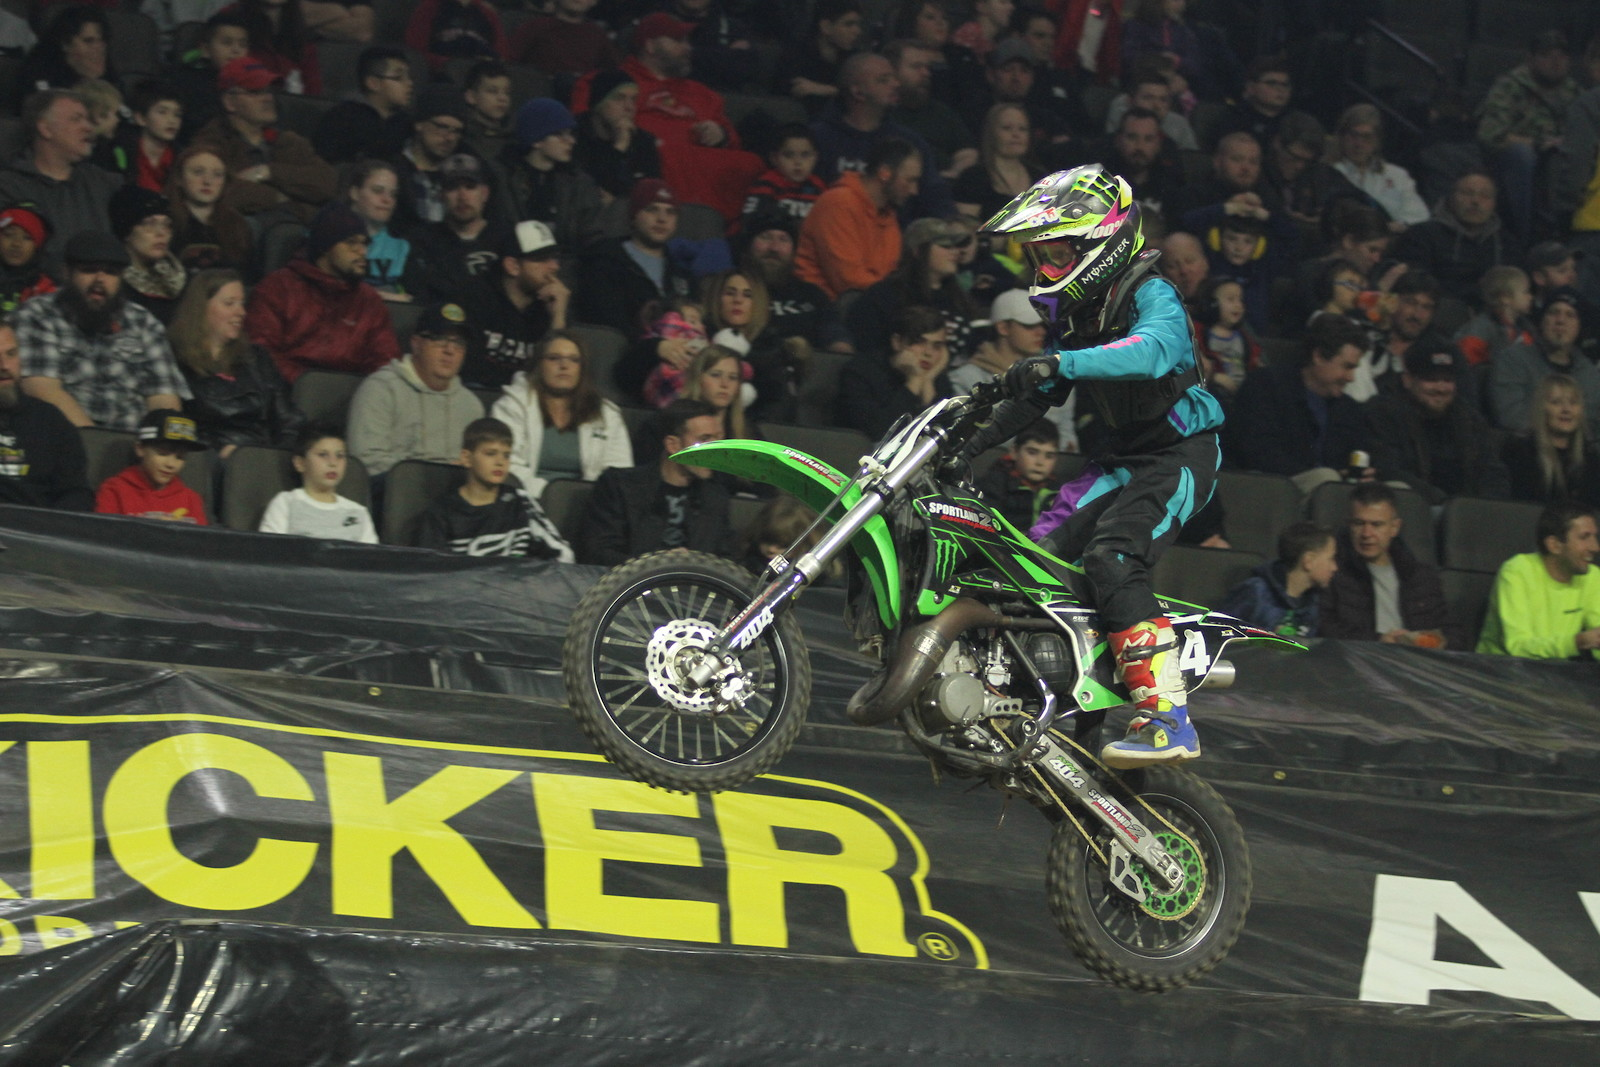 Riley Busse - midwest_moto_media - Motocross Pictures - Vital MX